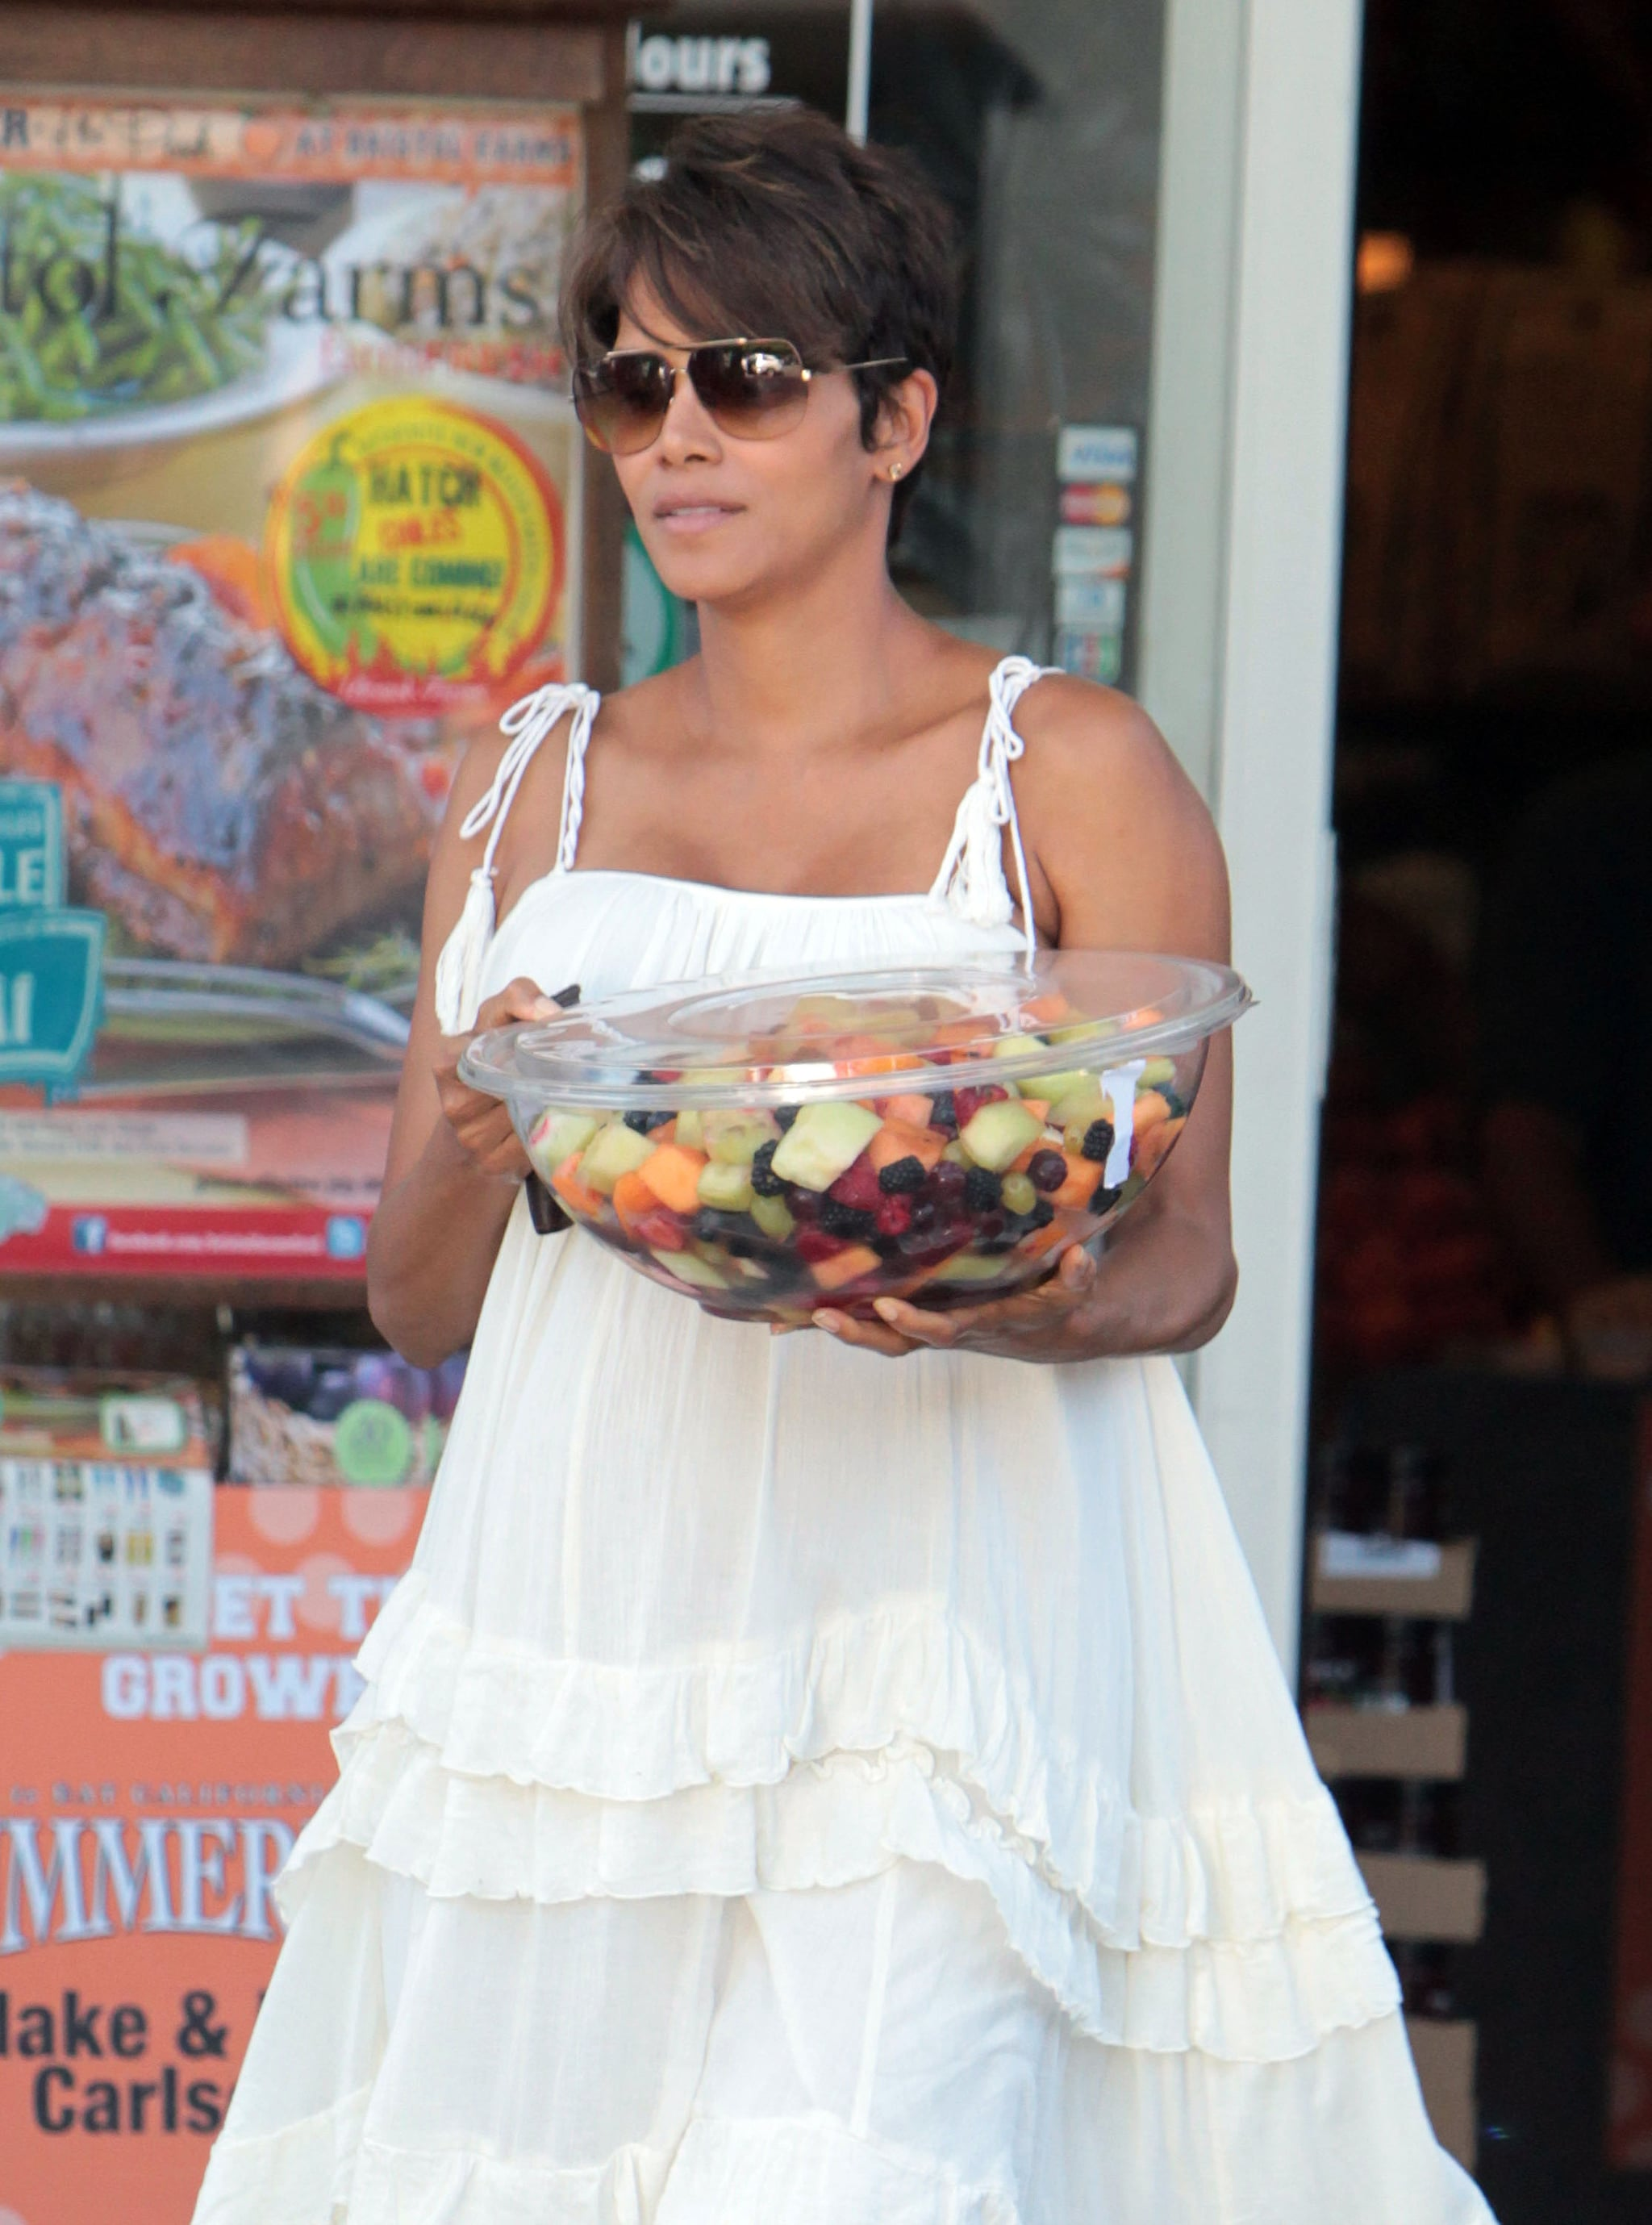 Halle Berry bought a fruit salad from a market in LA.